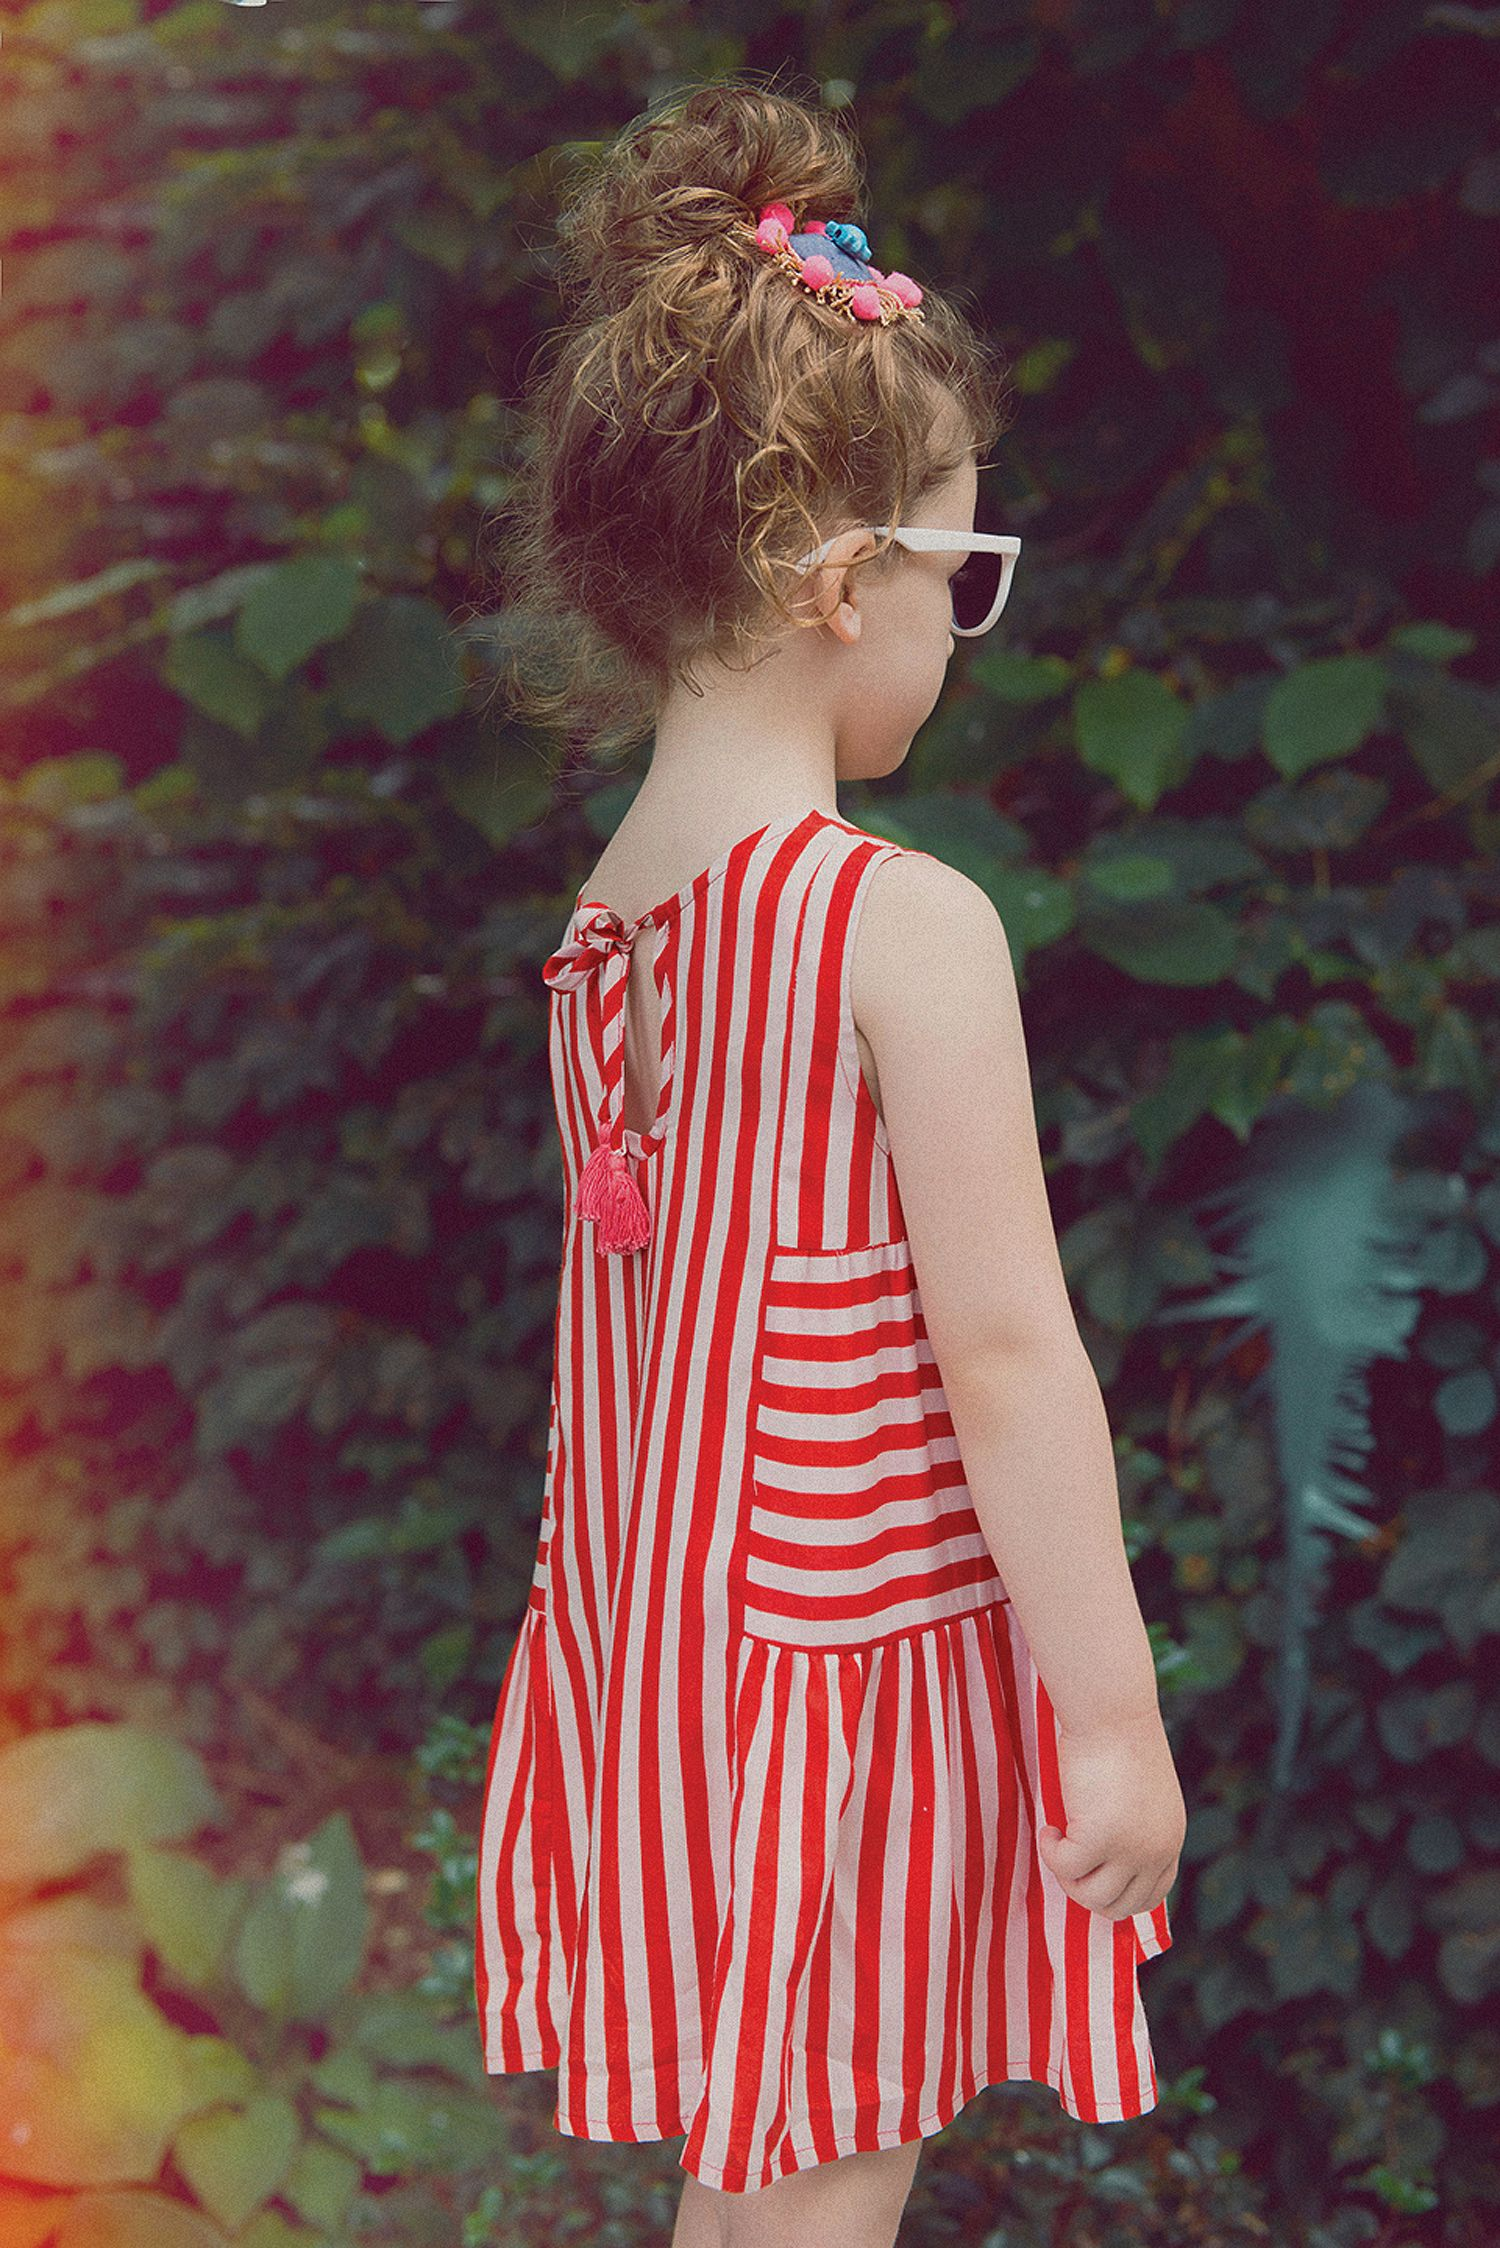 Lulaland Spring Summer 17 Collection Available On Smallable Http En Smallable Com Lulaland Boys Kids Summer Fashion Dresses Kids Girl Summer Outfits Kids [ 2248 x 1500 Pixel ]